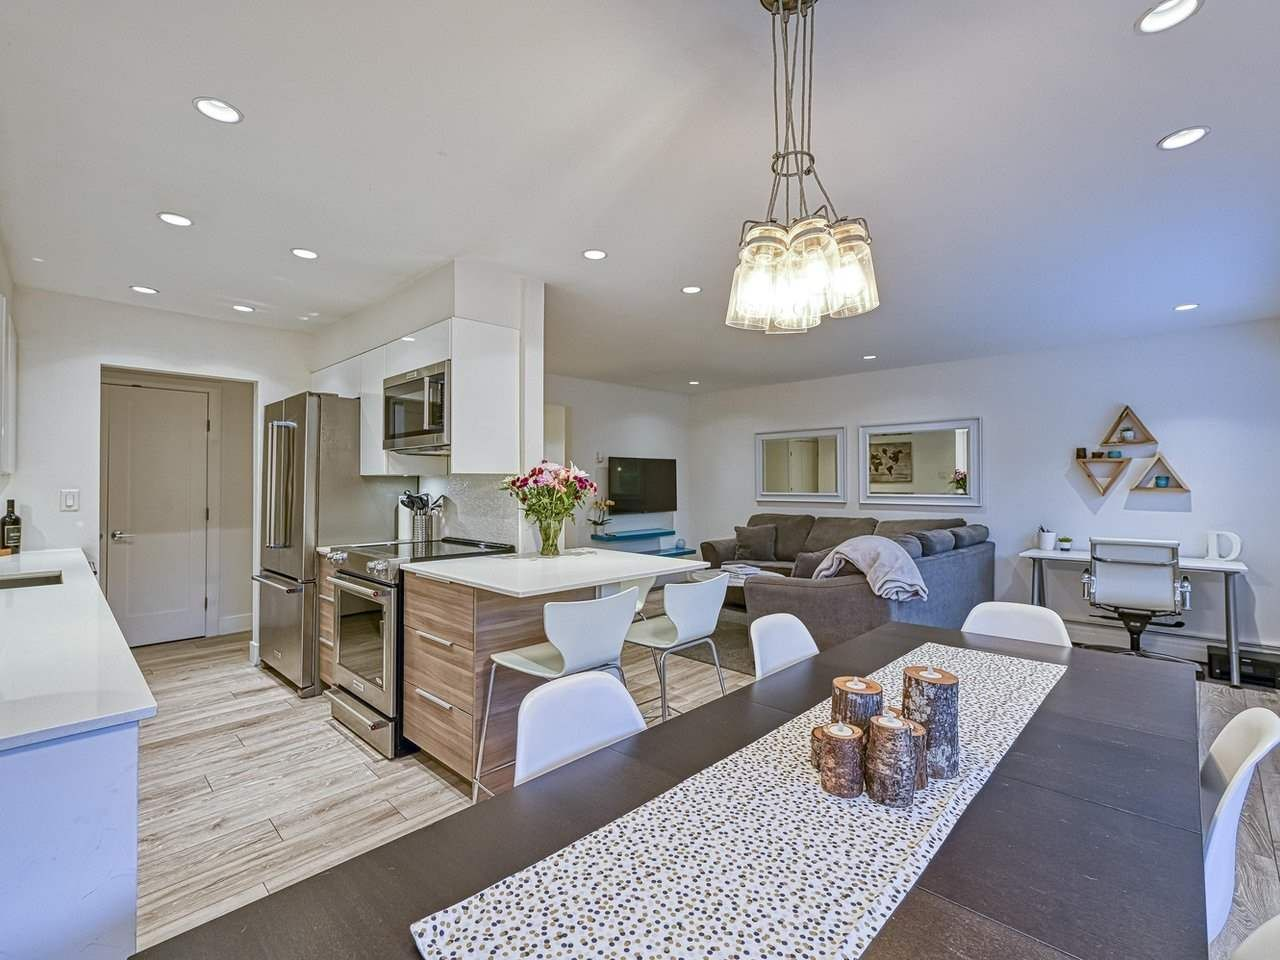 """Main Photo: 409 555 W 28TH Street in North Vancouver: Upper Lonsdale Condo for sale in """"Cedarbrooke Village"""" : MLS®# R2555453"""